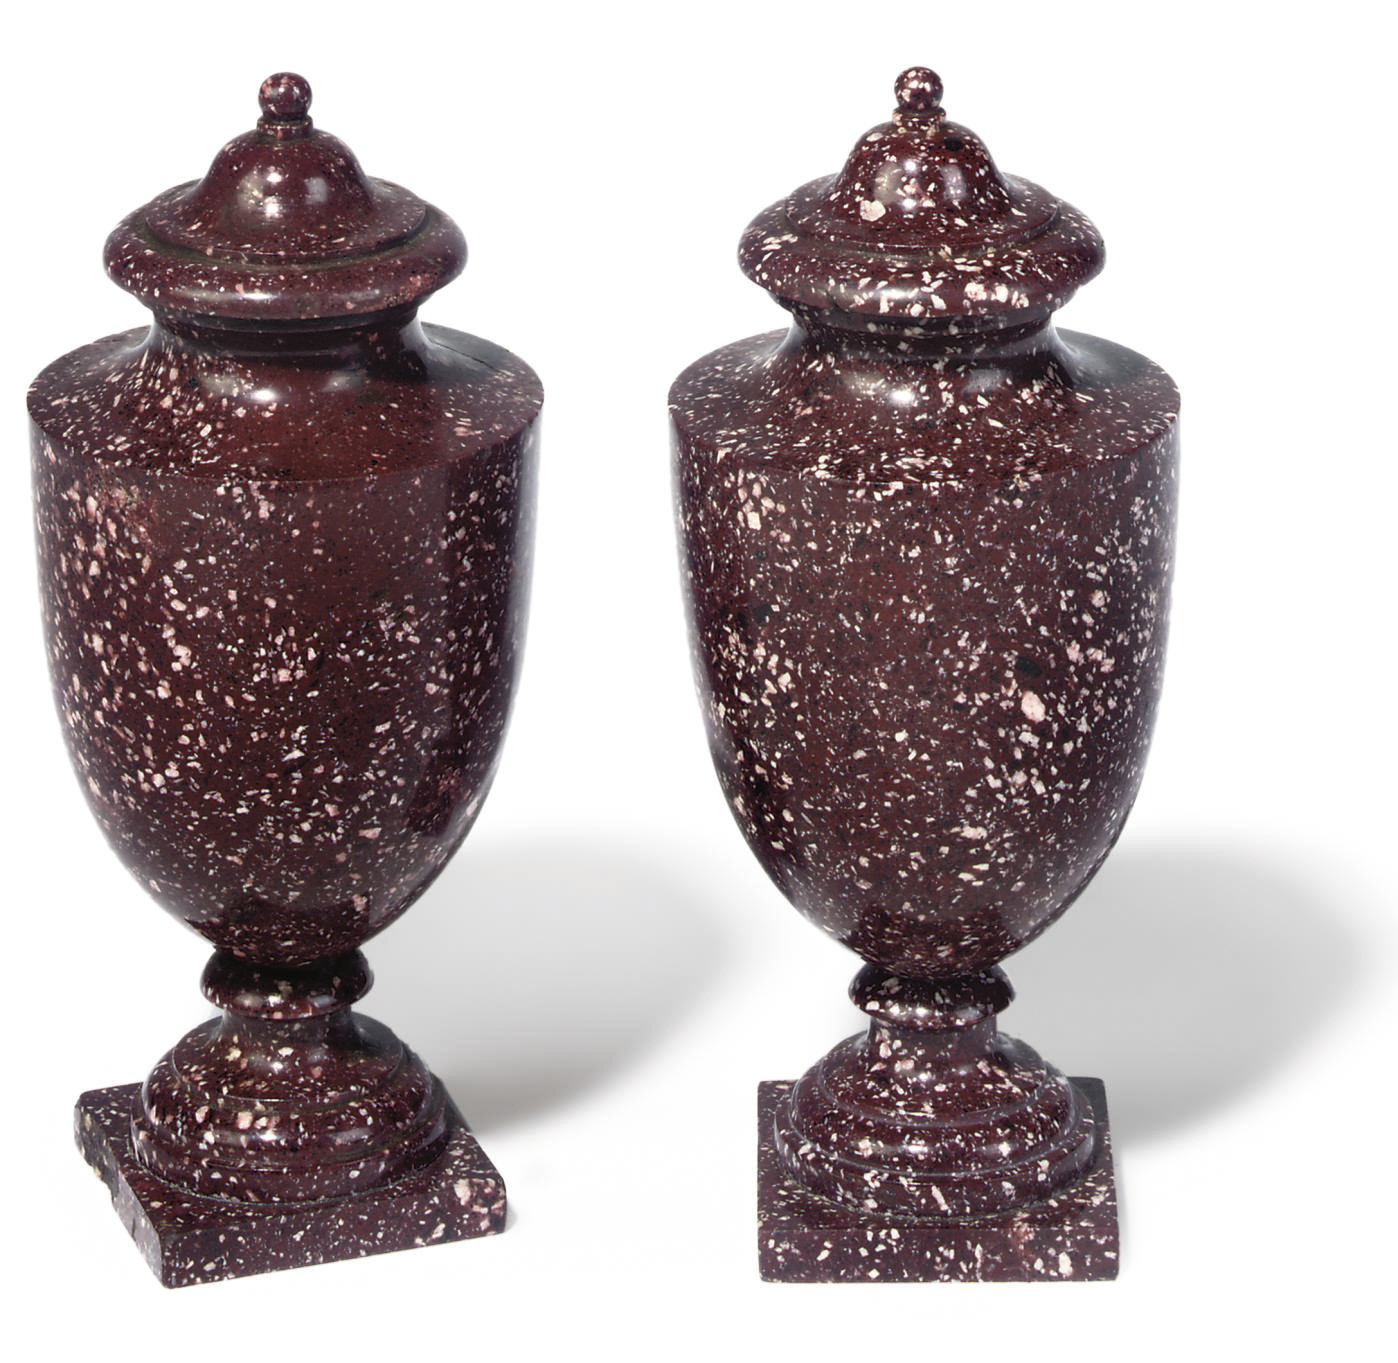 A PAIR OF PORPHYRY URNS